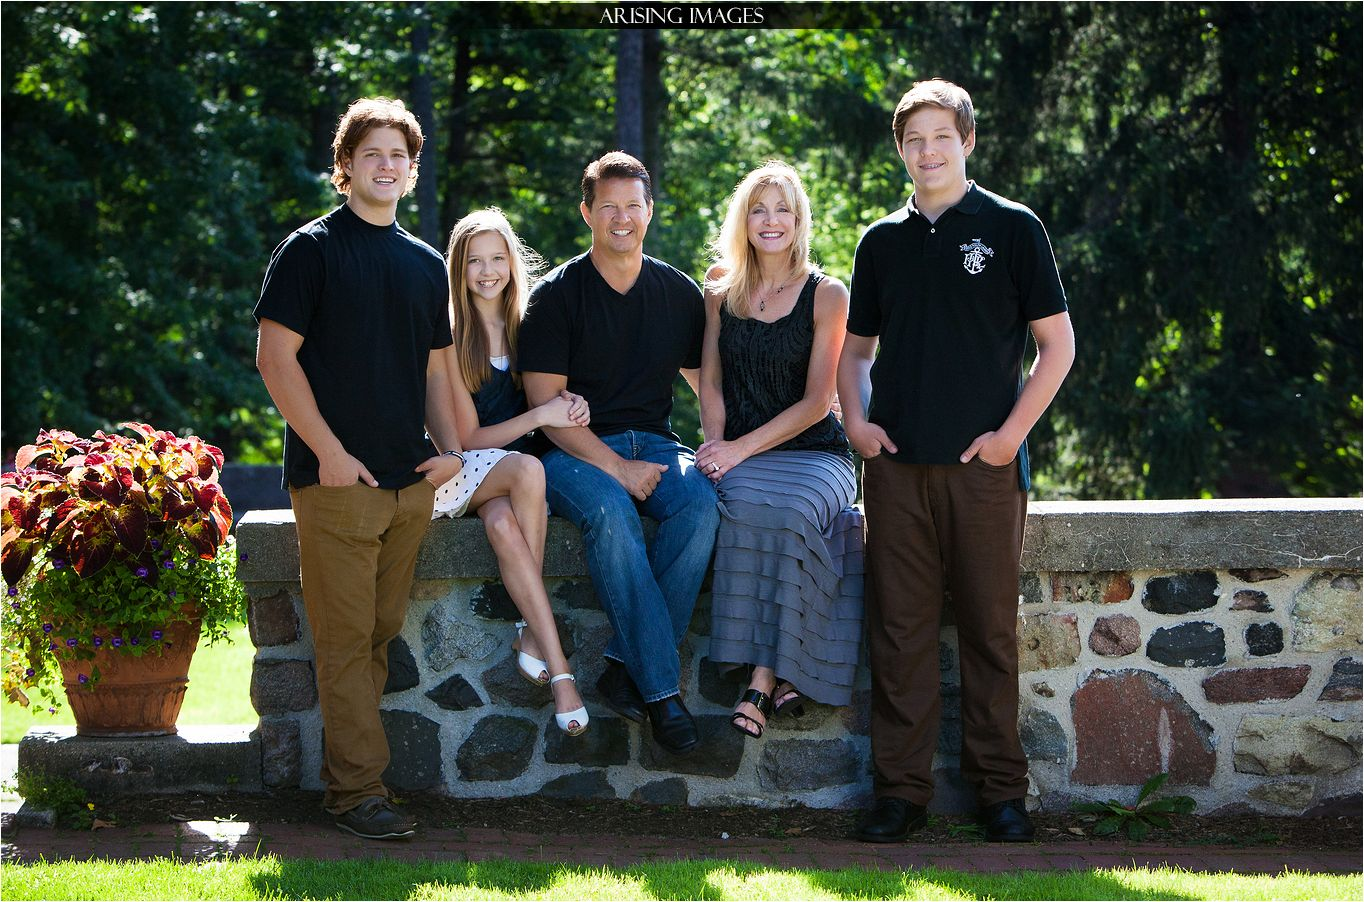 Getting Family Pictures Done Before Graduation